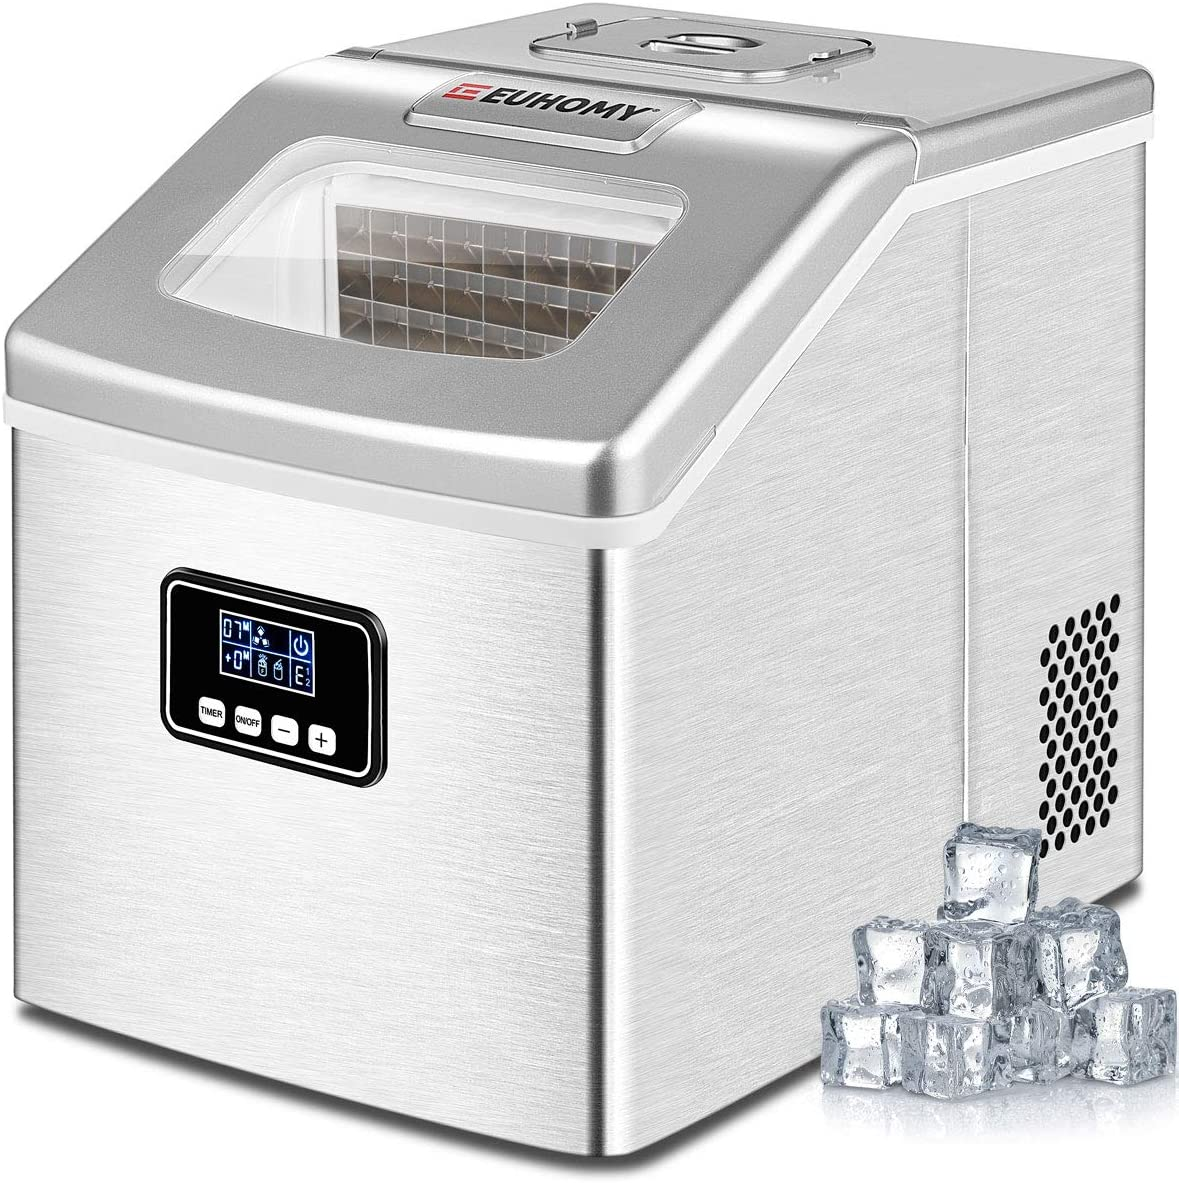 Euhomy Ice Maker Machine Countertop, 40Lbs/24H Auto Self-Cleaning